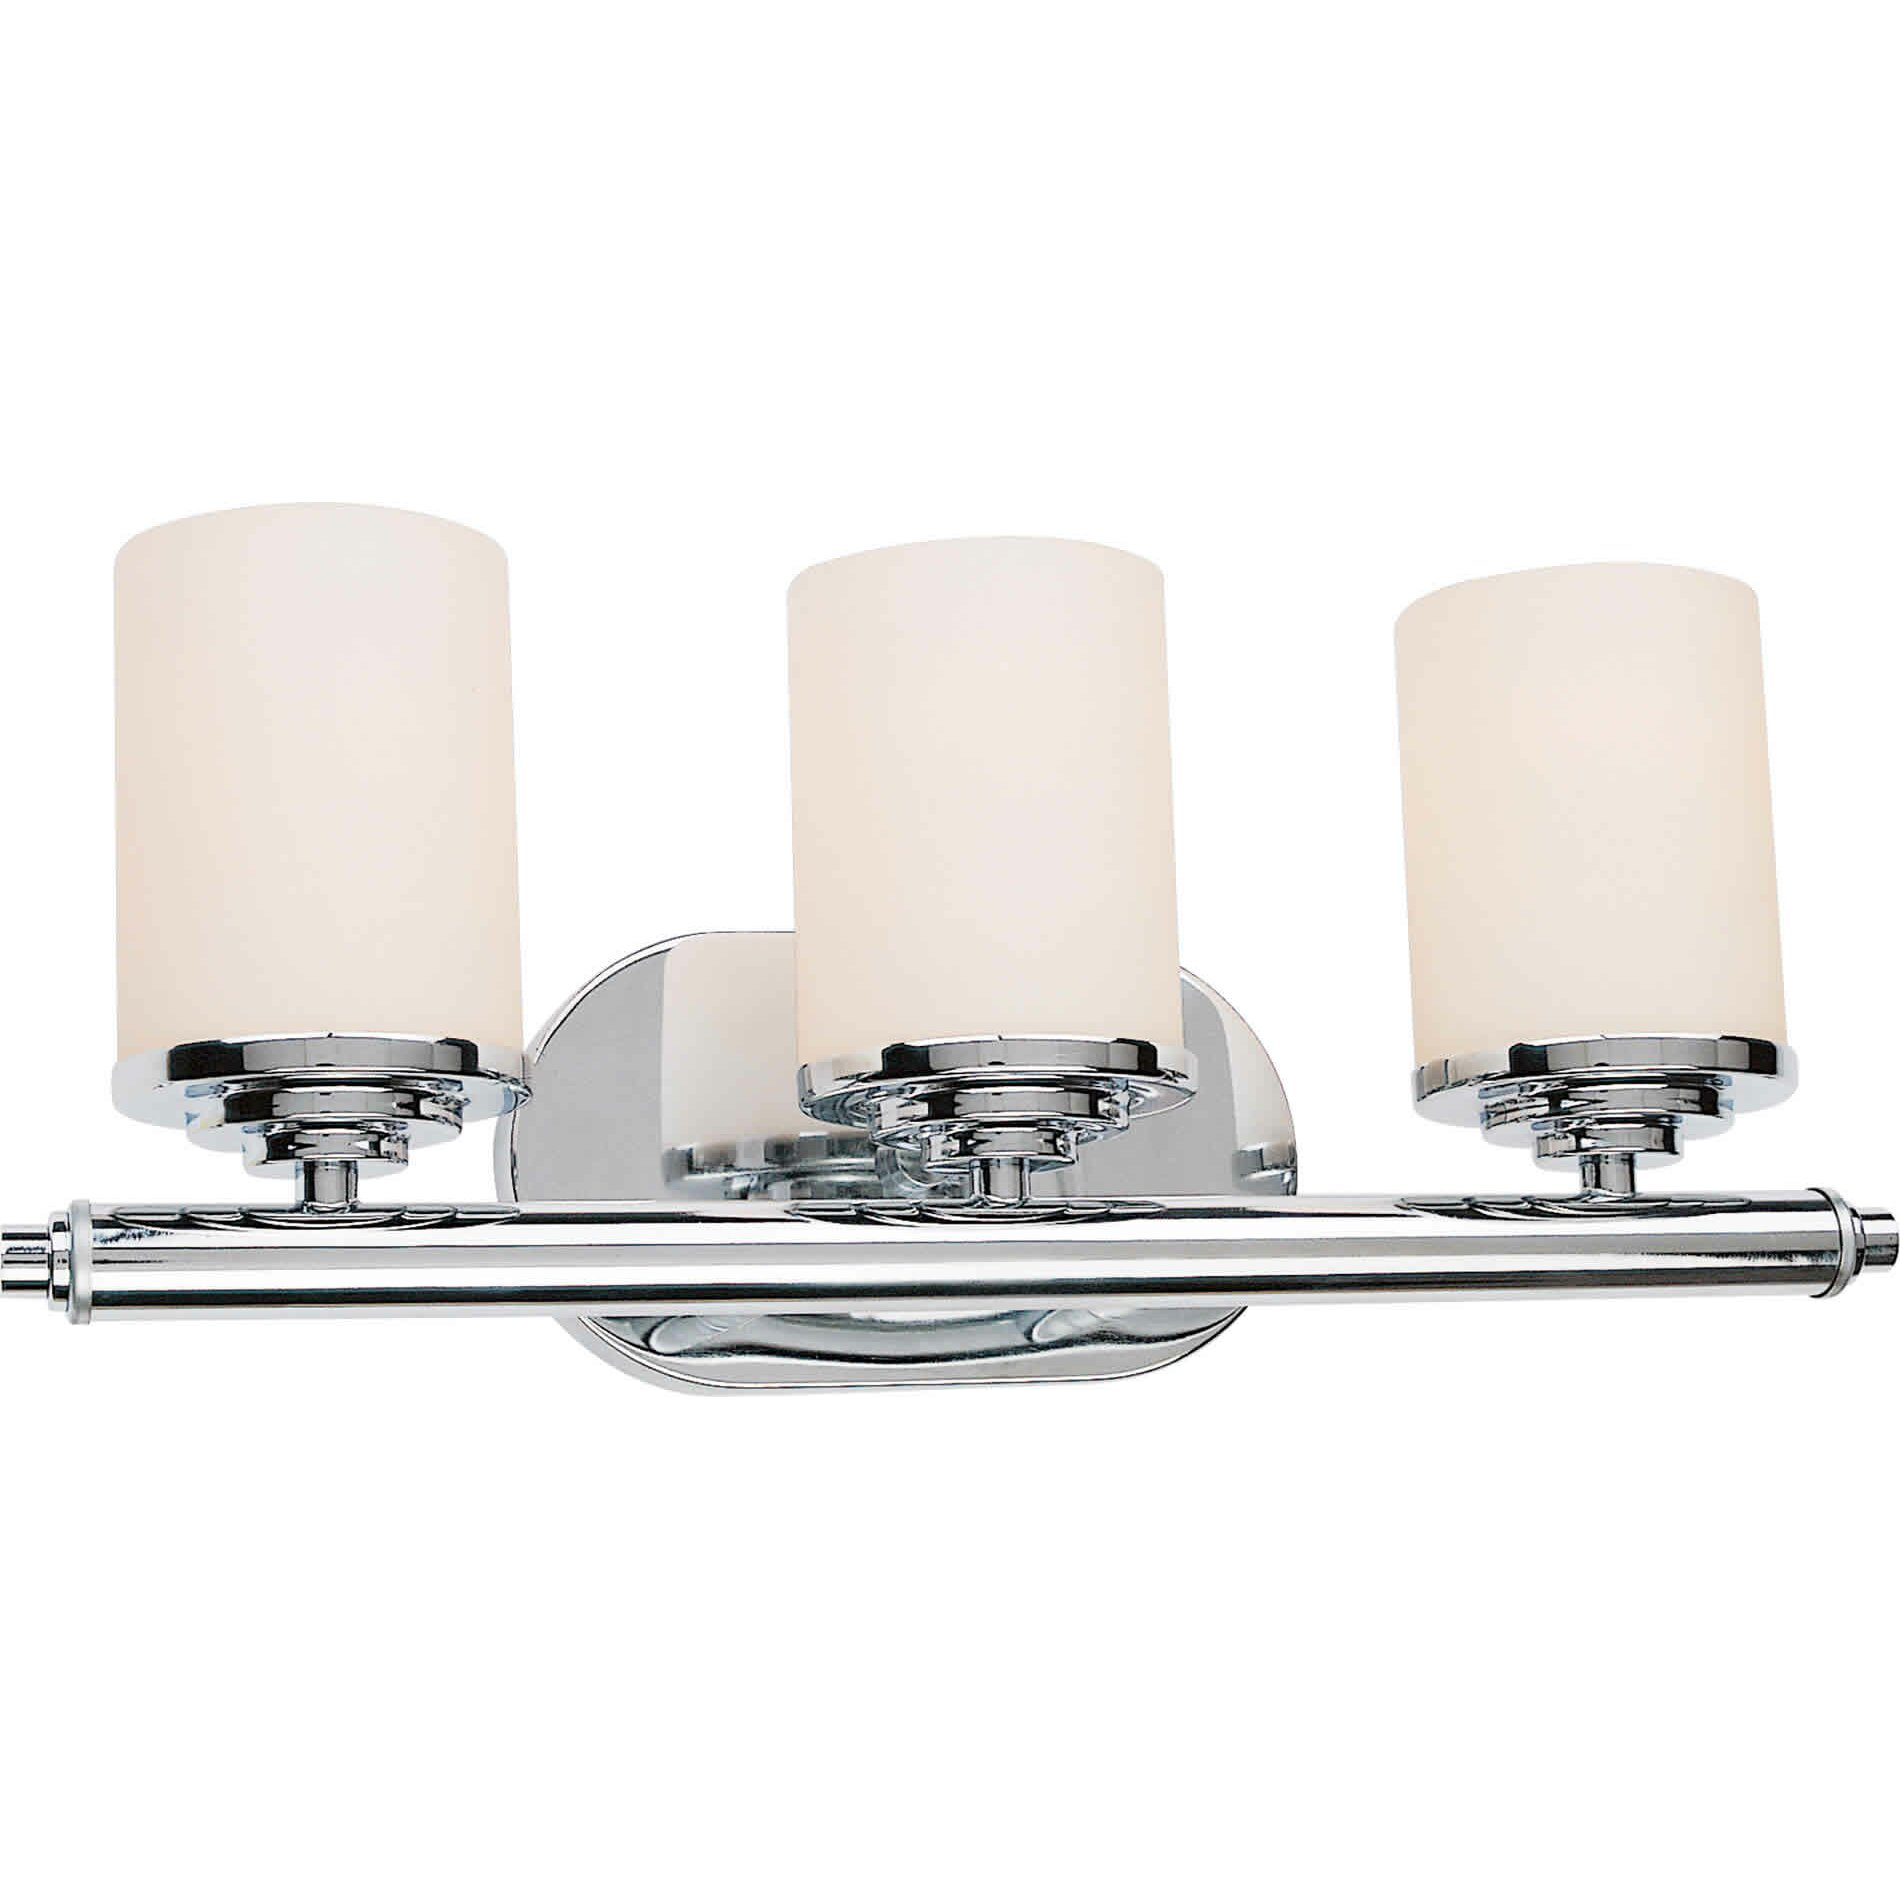 Three Light Bathroom Vanity Light: Forte Lighting 3 Light Vanity Light & Reviews